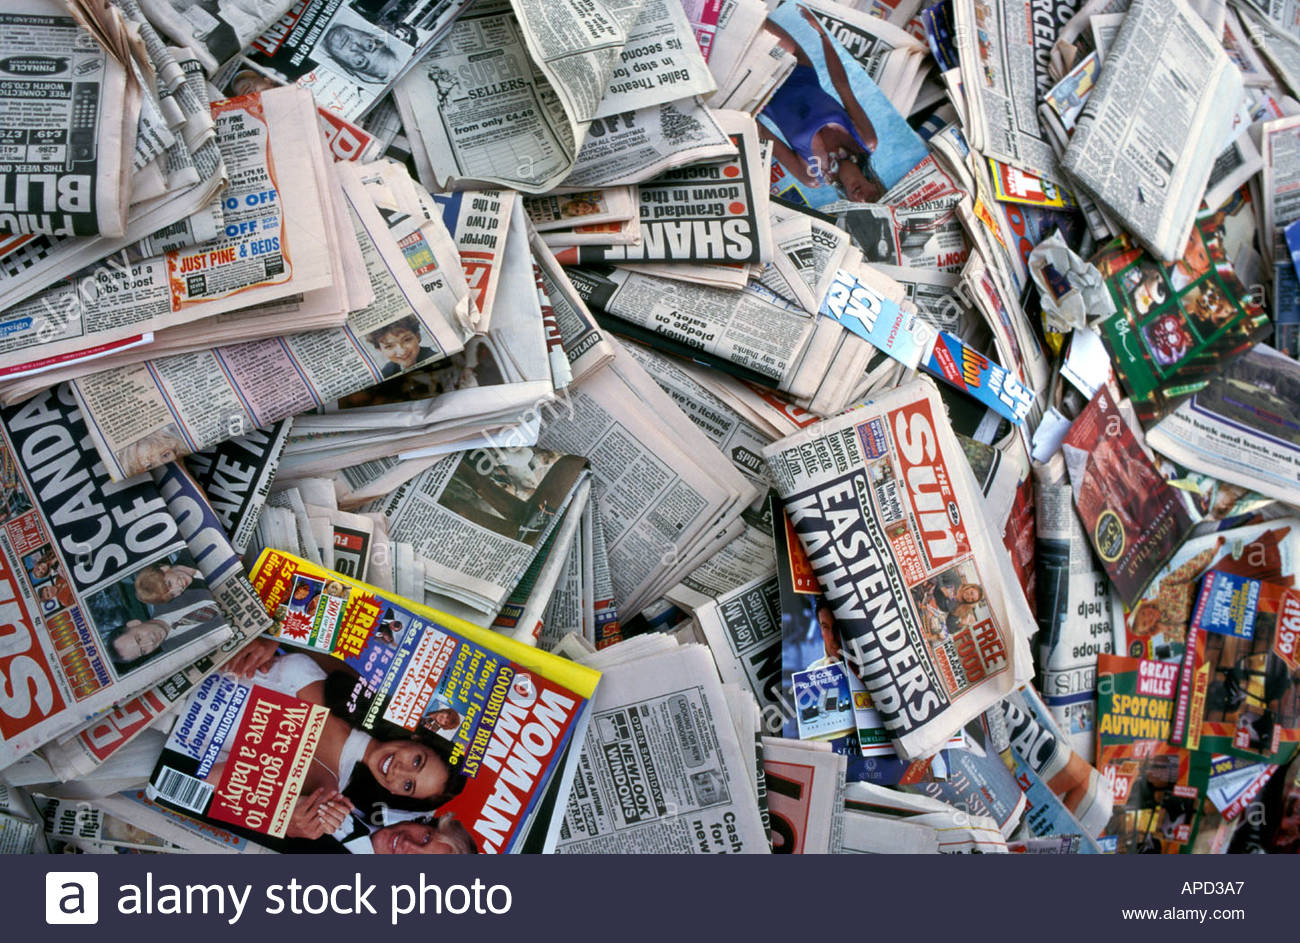 Pile Of Newspapers And Magazines For Recycling Uk Stock Photo ...